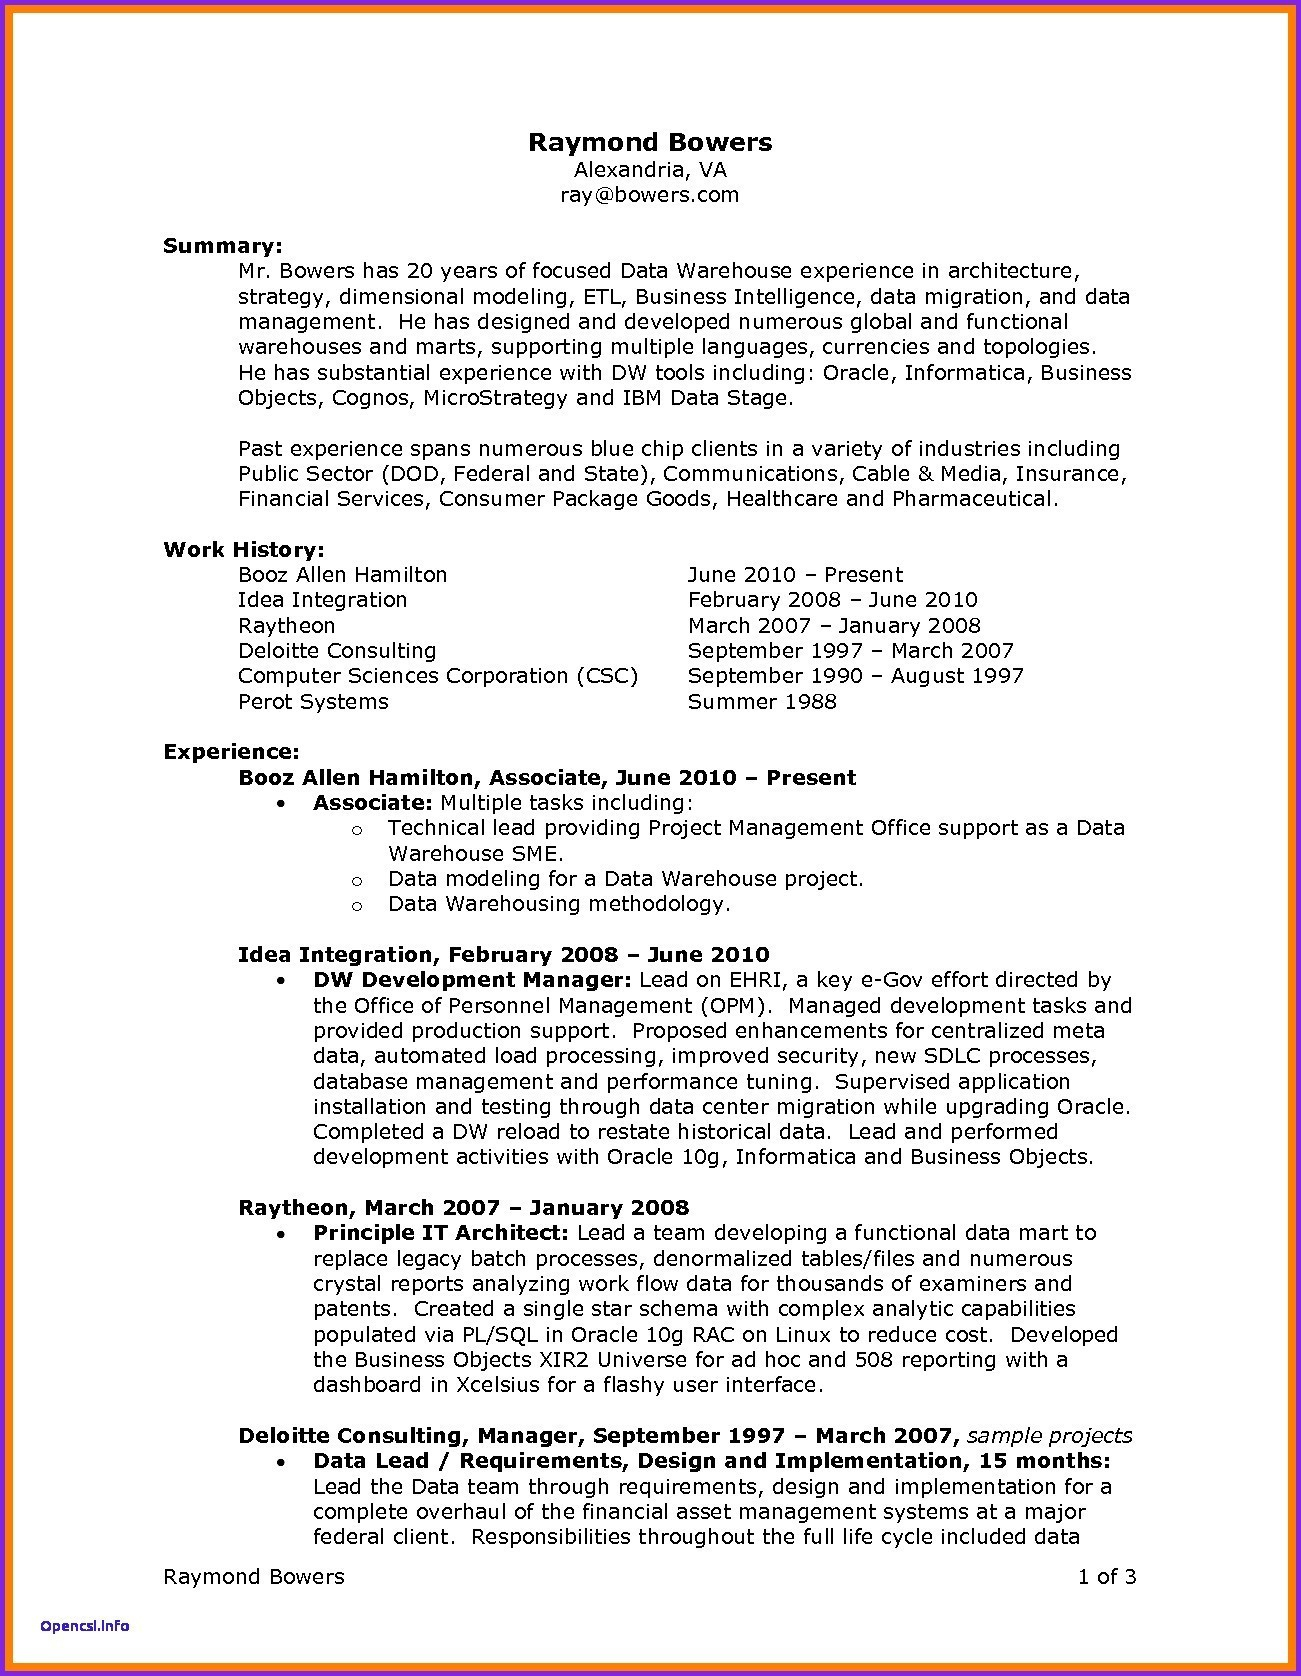 Functional Resume Template Pdf - where to Print Resume Elegant Types Resume formats Elegant Lovely